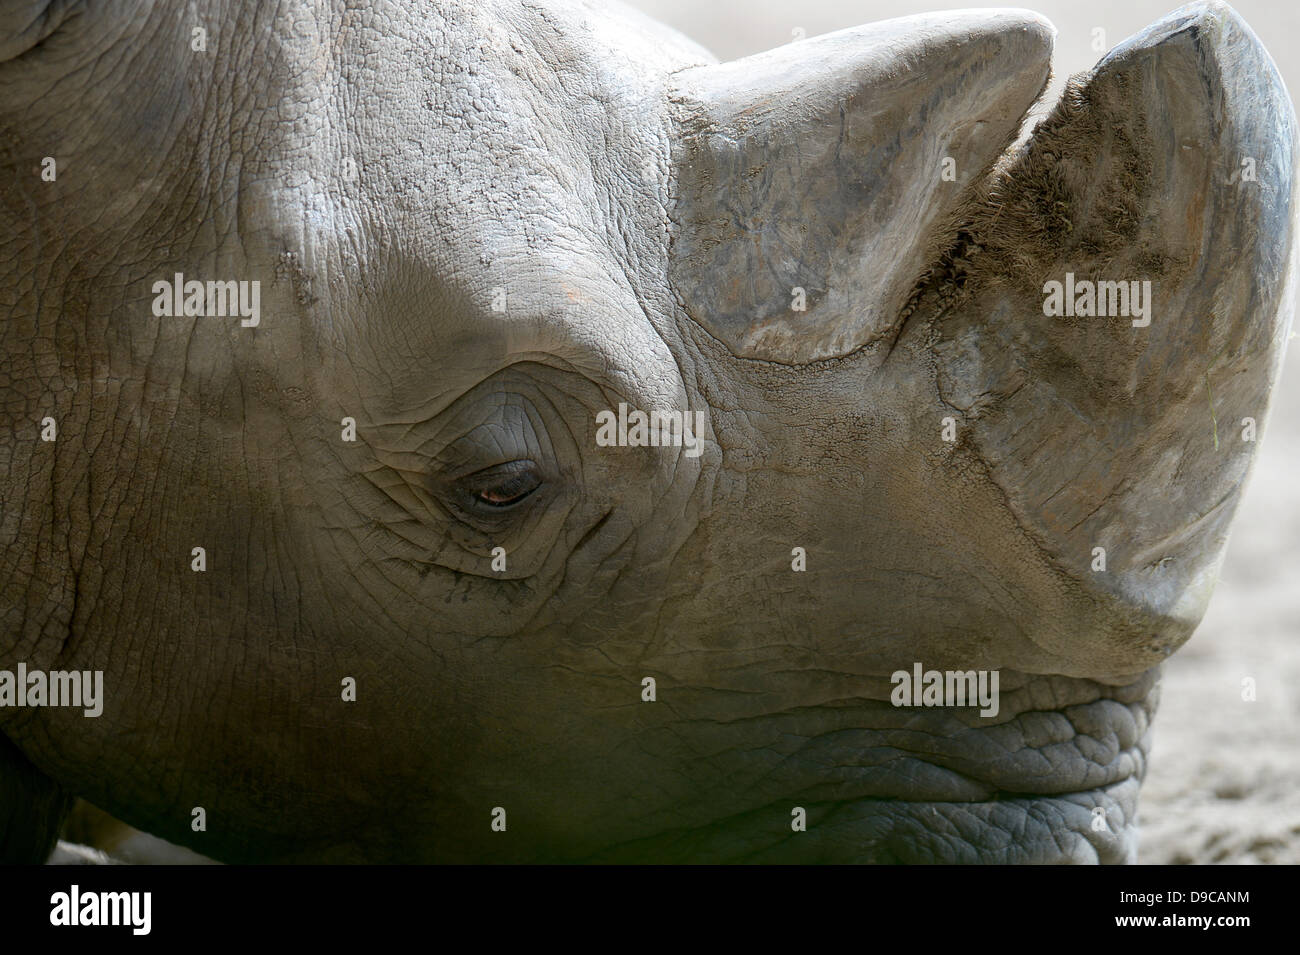 Duisburg, Germany. 17th June, 2013. A white rhionocerus or square-lipped rhinoceros (Ceratotherium simum) lies in Stock Photo